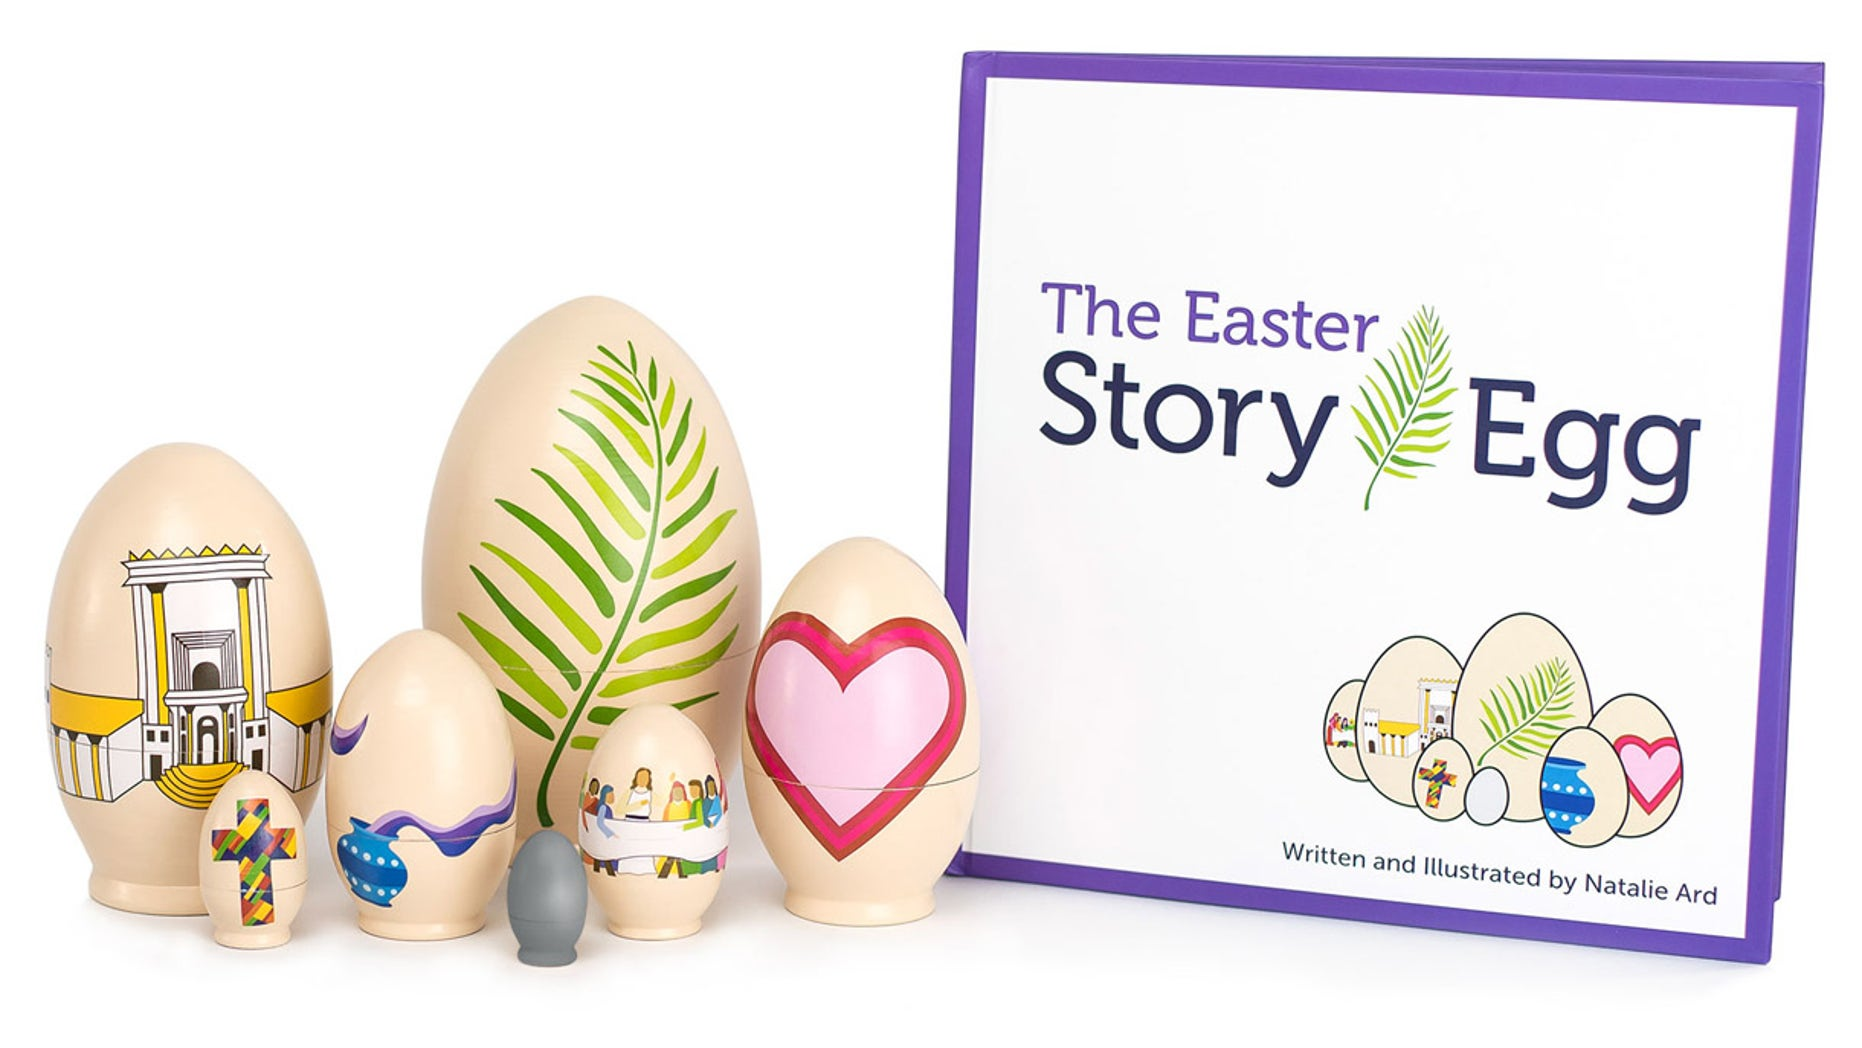 The Easter Story Egg helps kids learn the